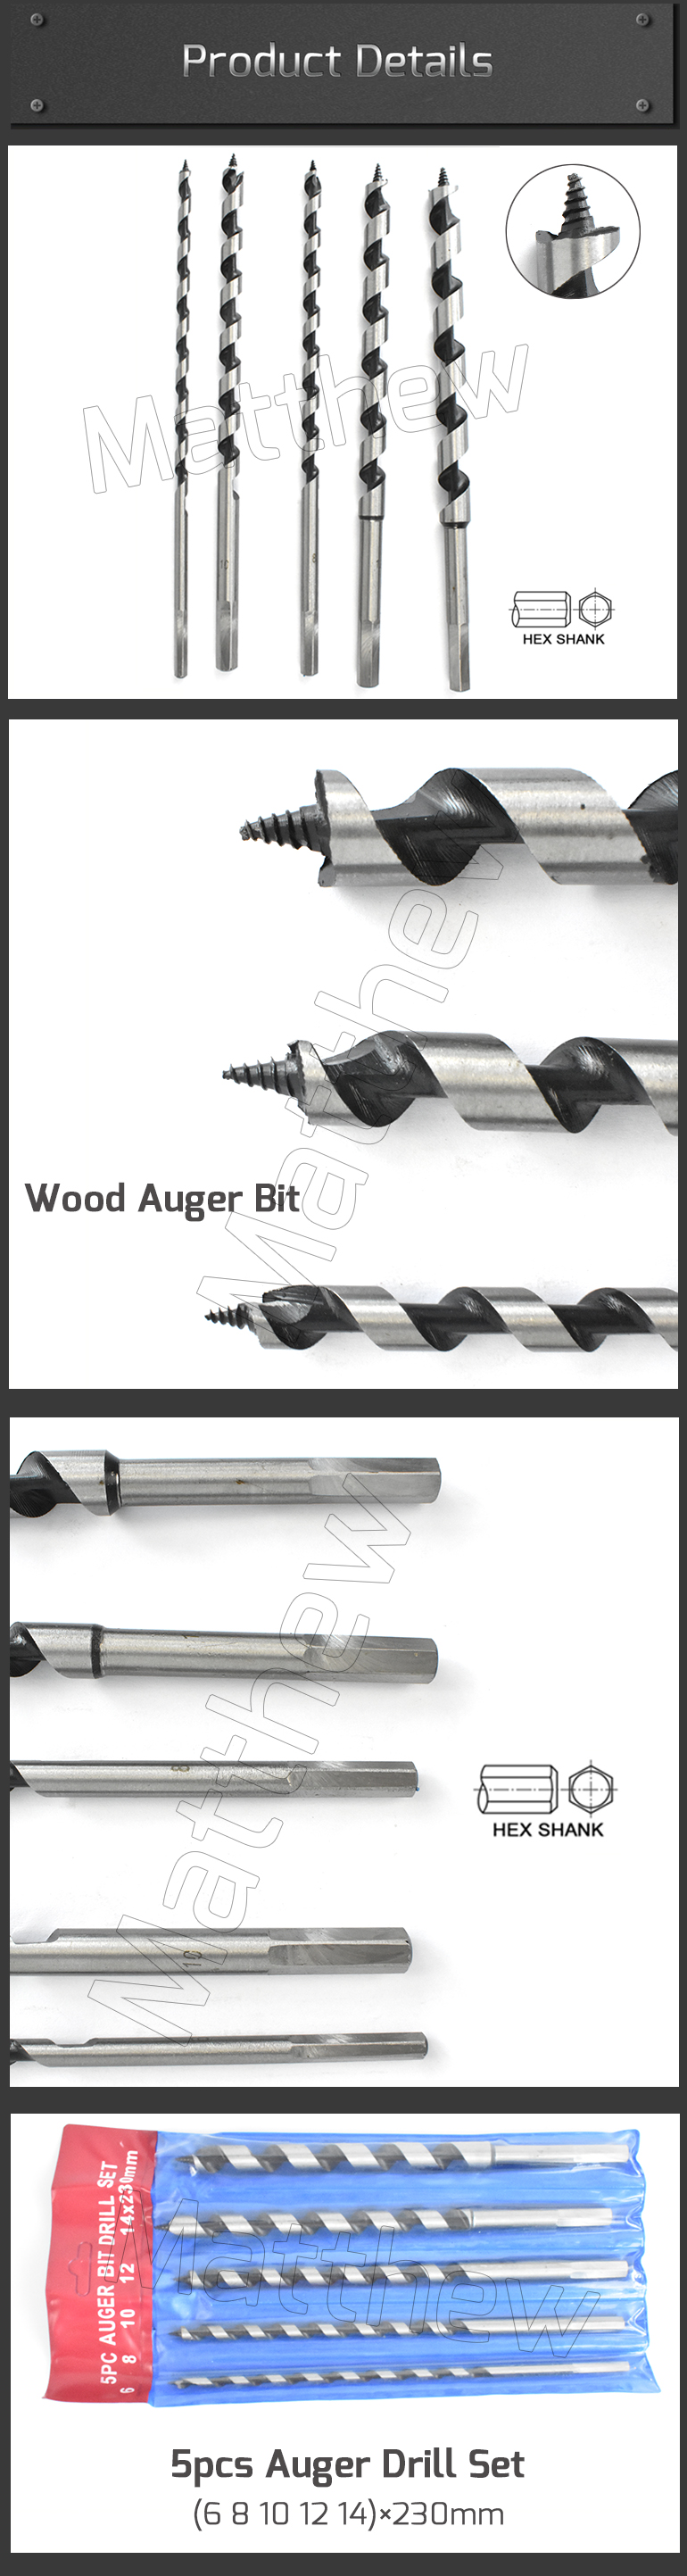 Single Flute Wood Auger Drill Bits for Wood Deep Drilling